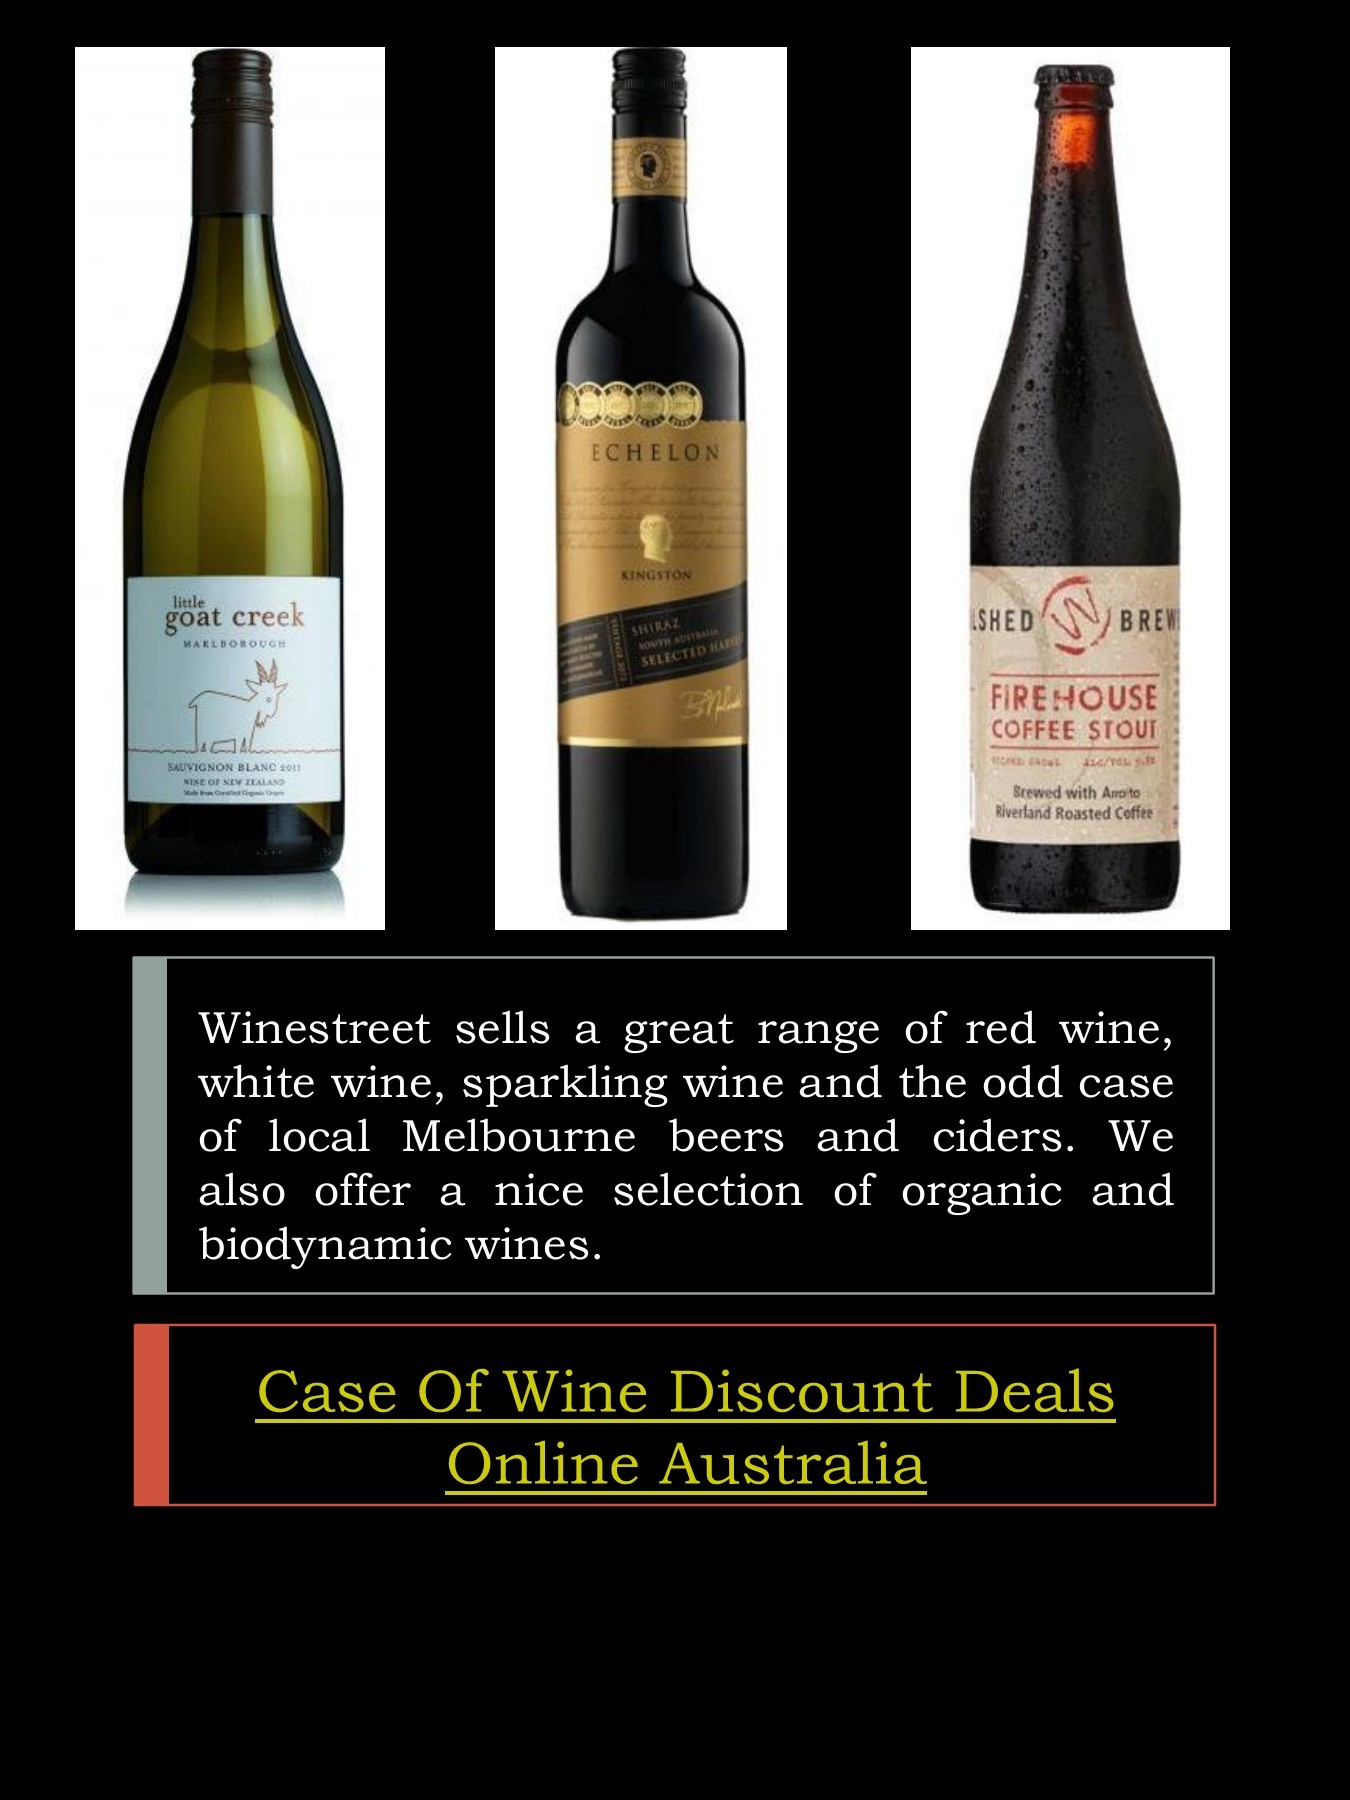 Wine Online Australia Case Of Wine Discount Deals Online Australia Pubhtml5